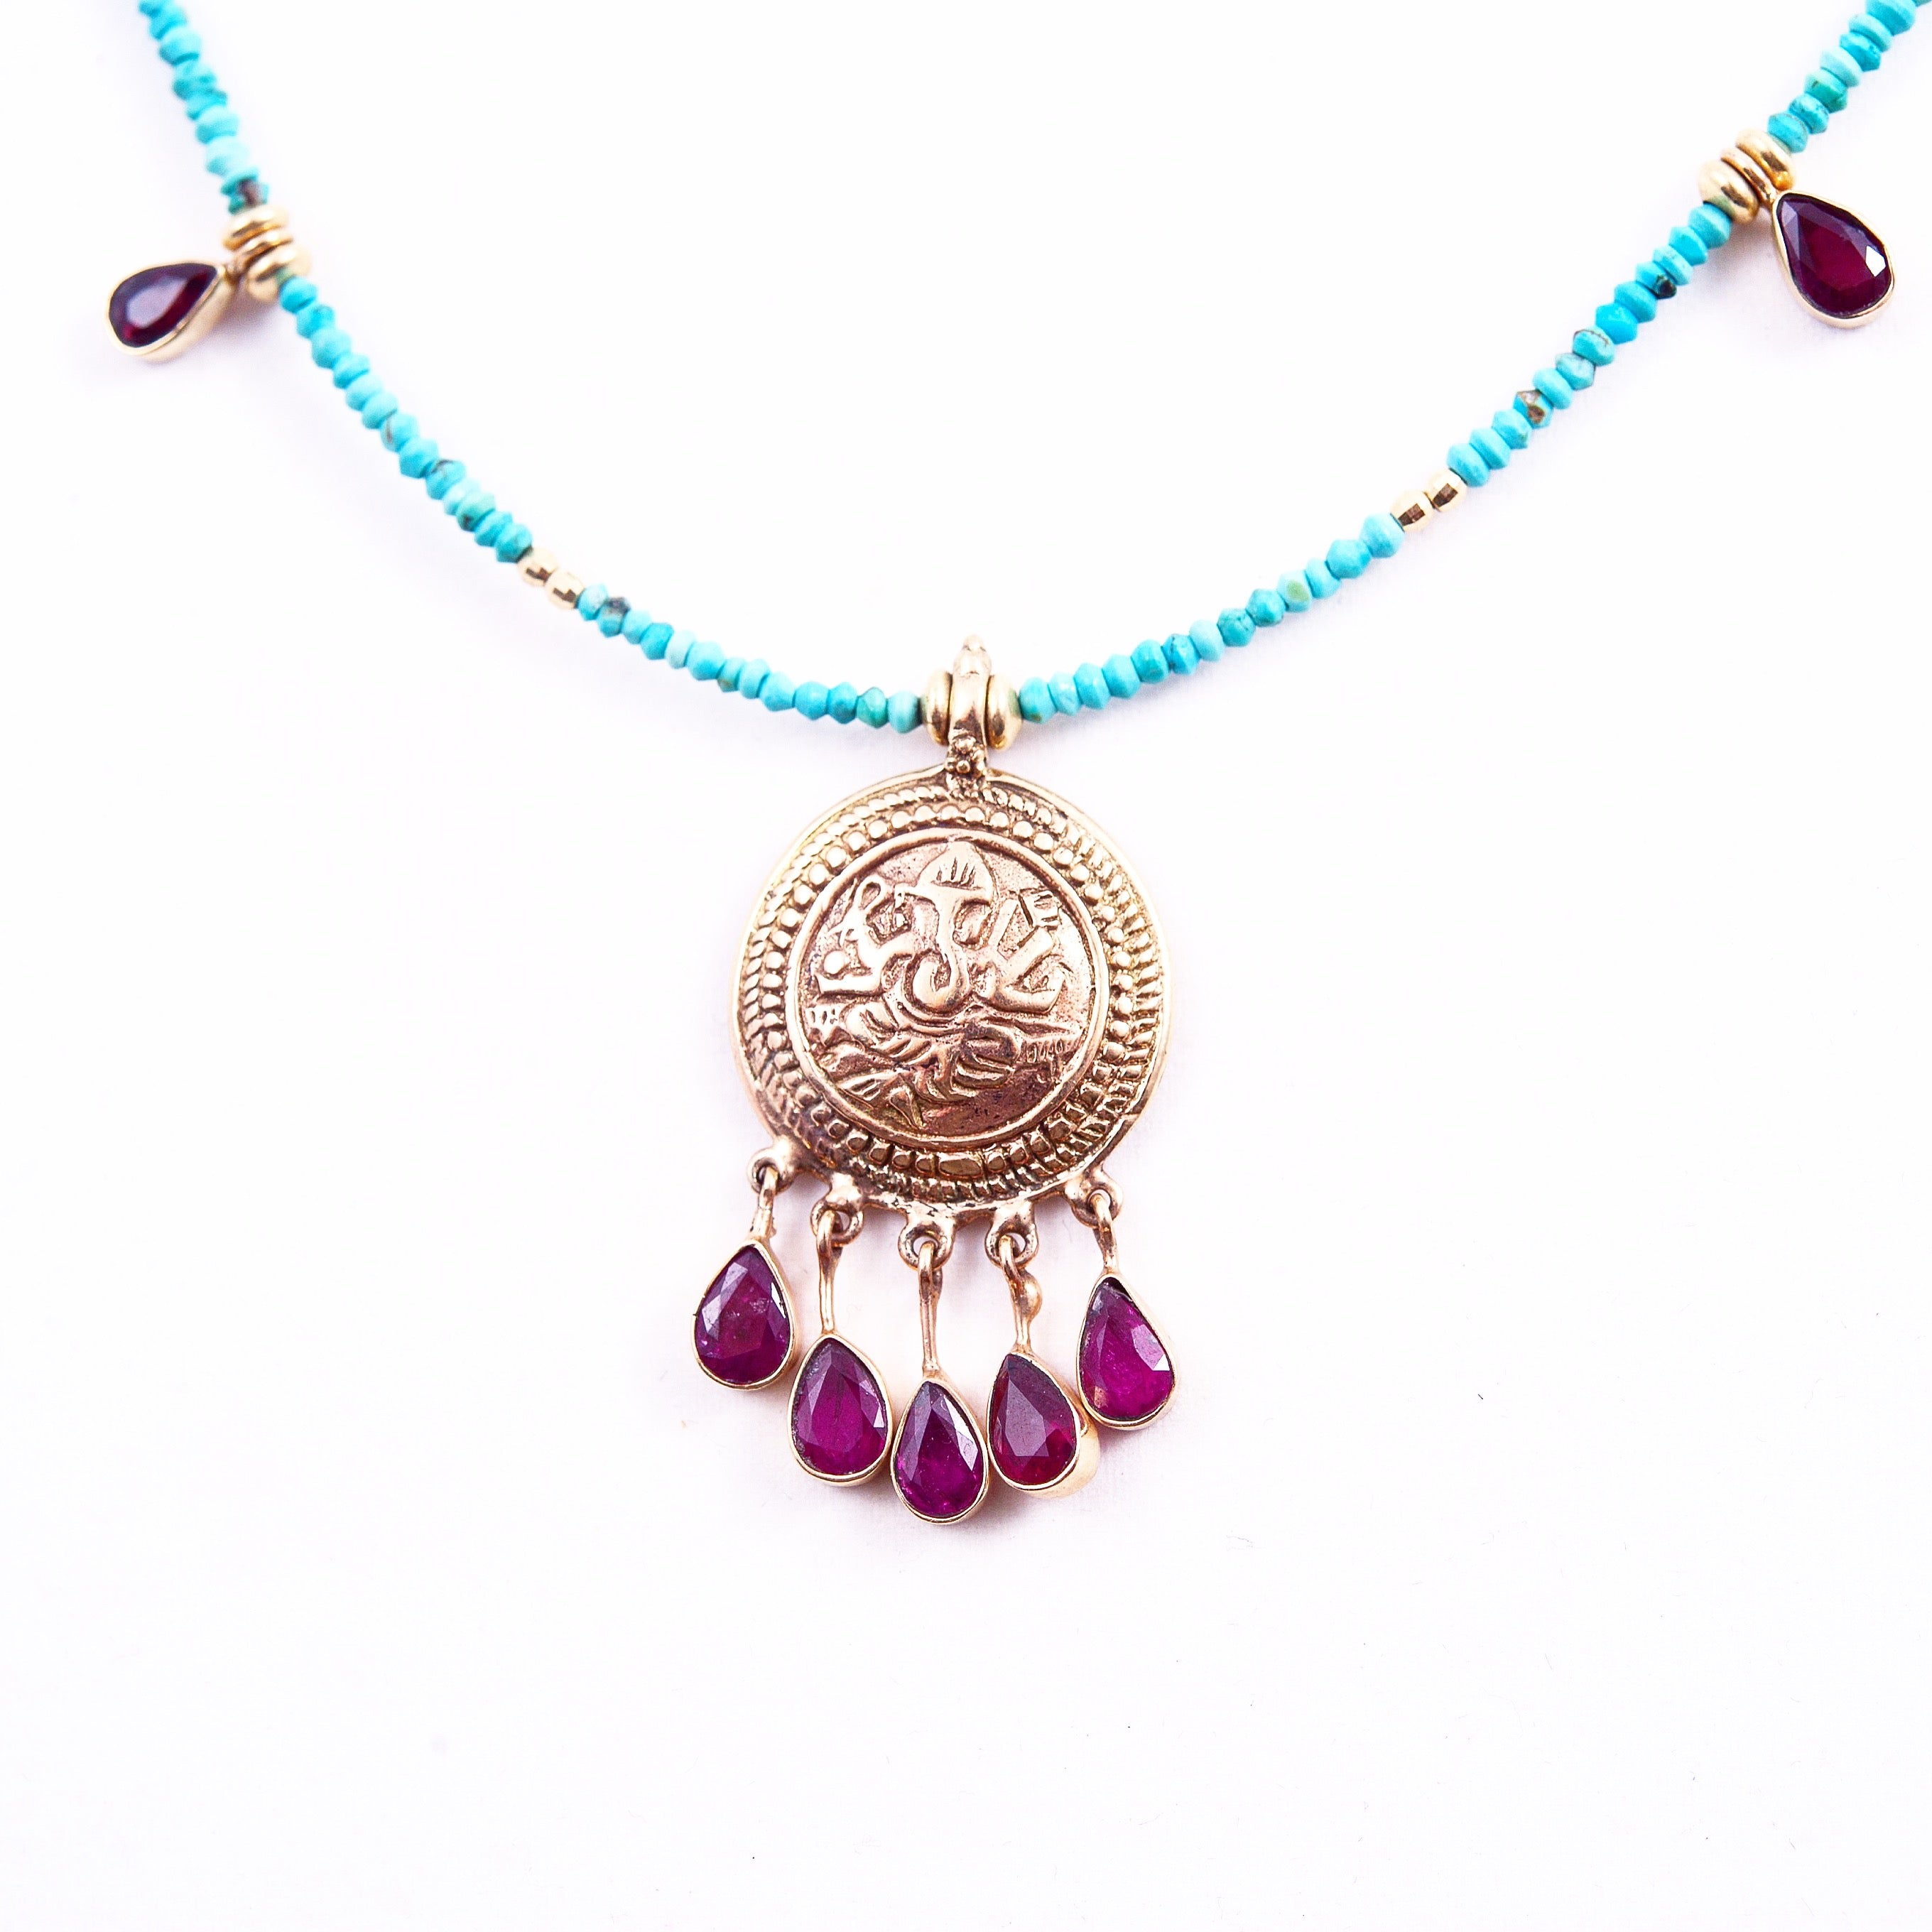 TURQUOISE AMULET COLLECTION. ONE OF  A KIND AMULETS